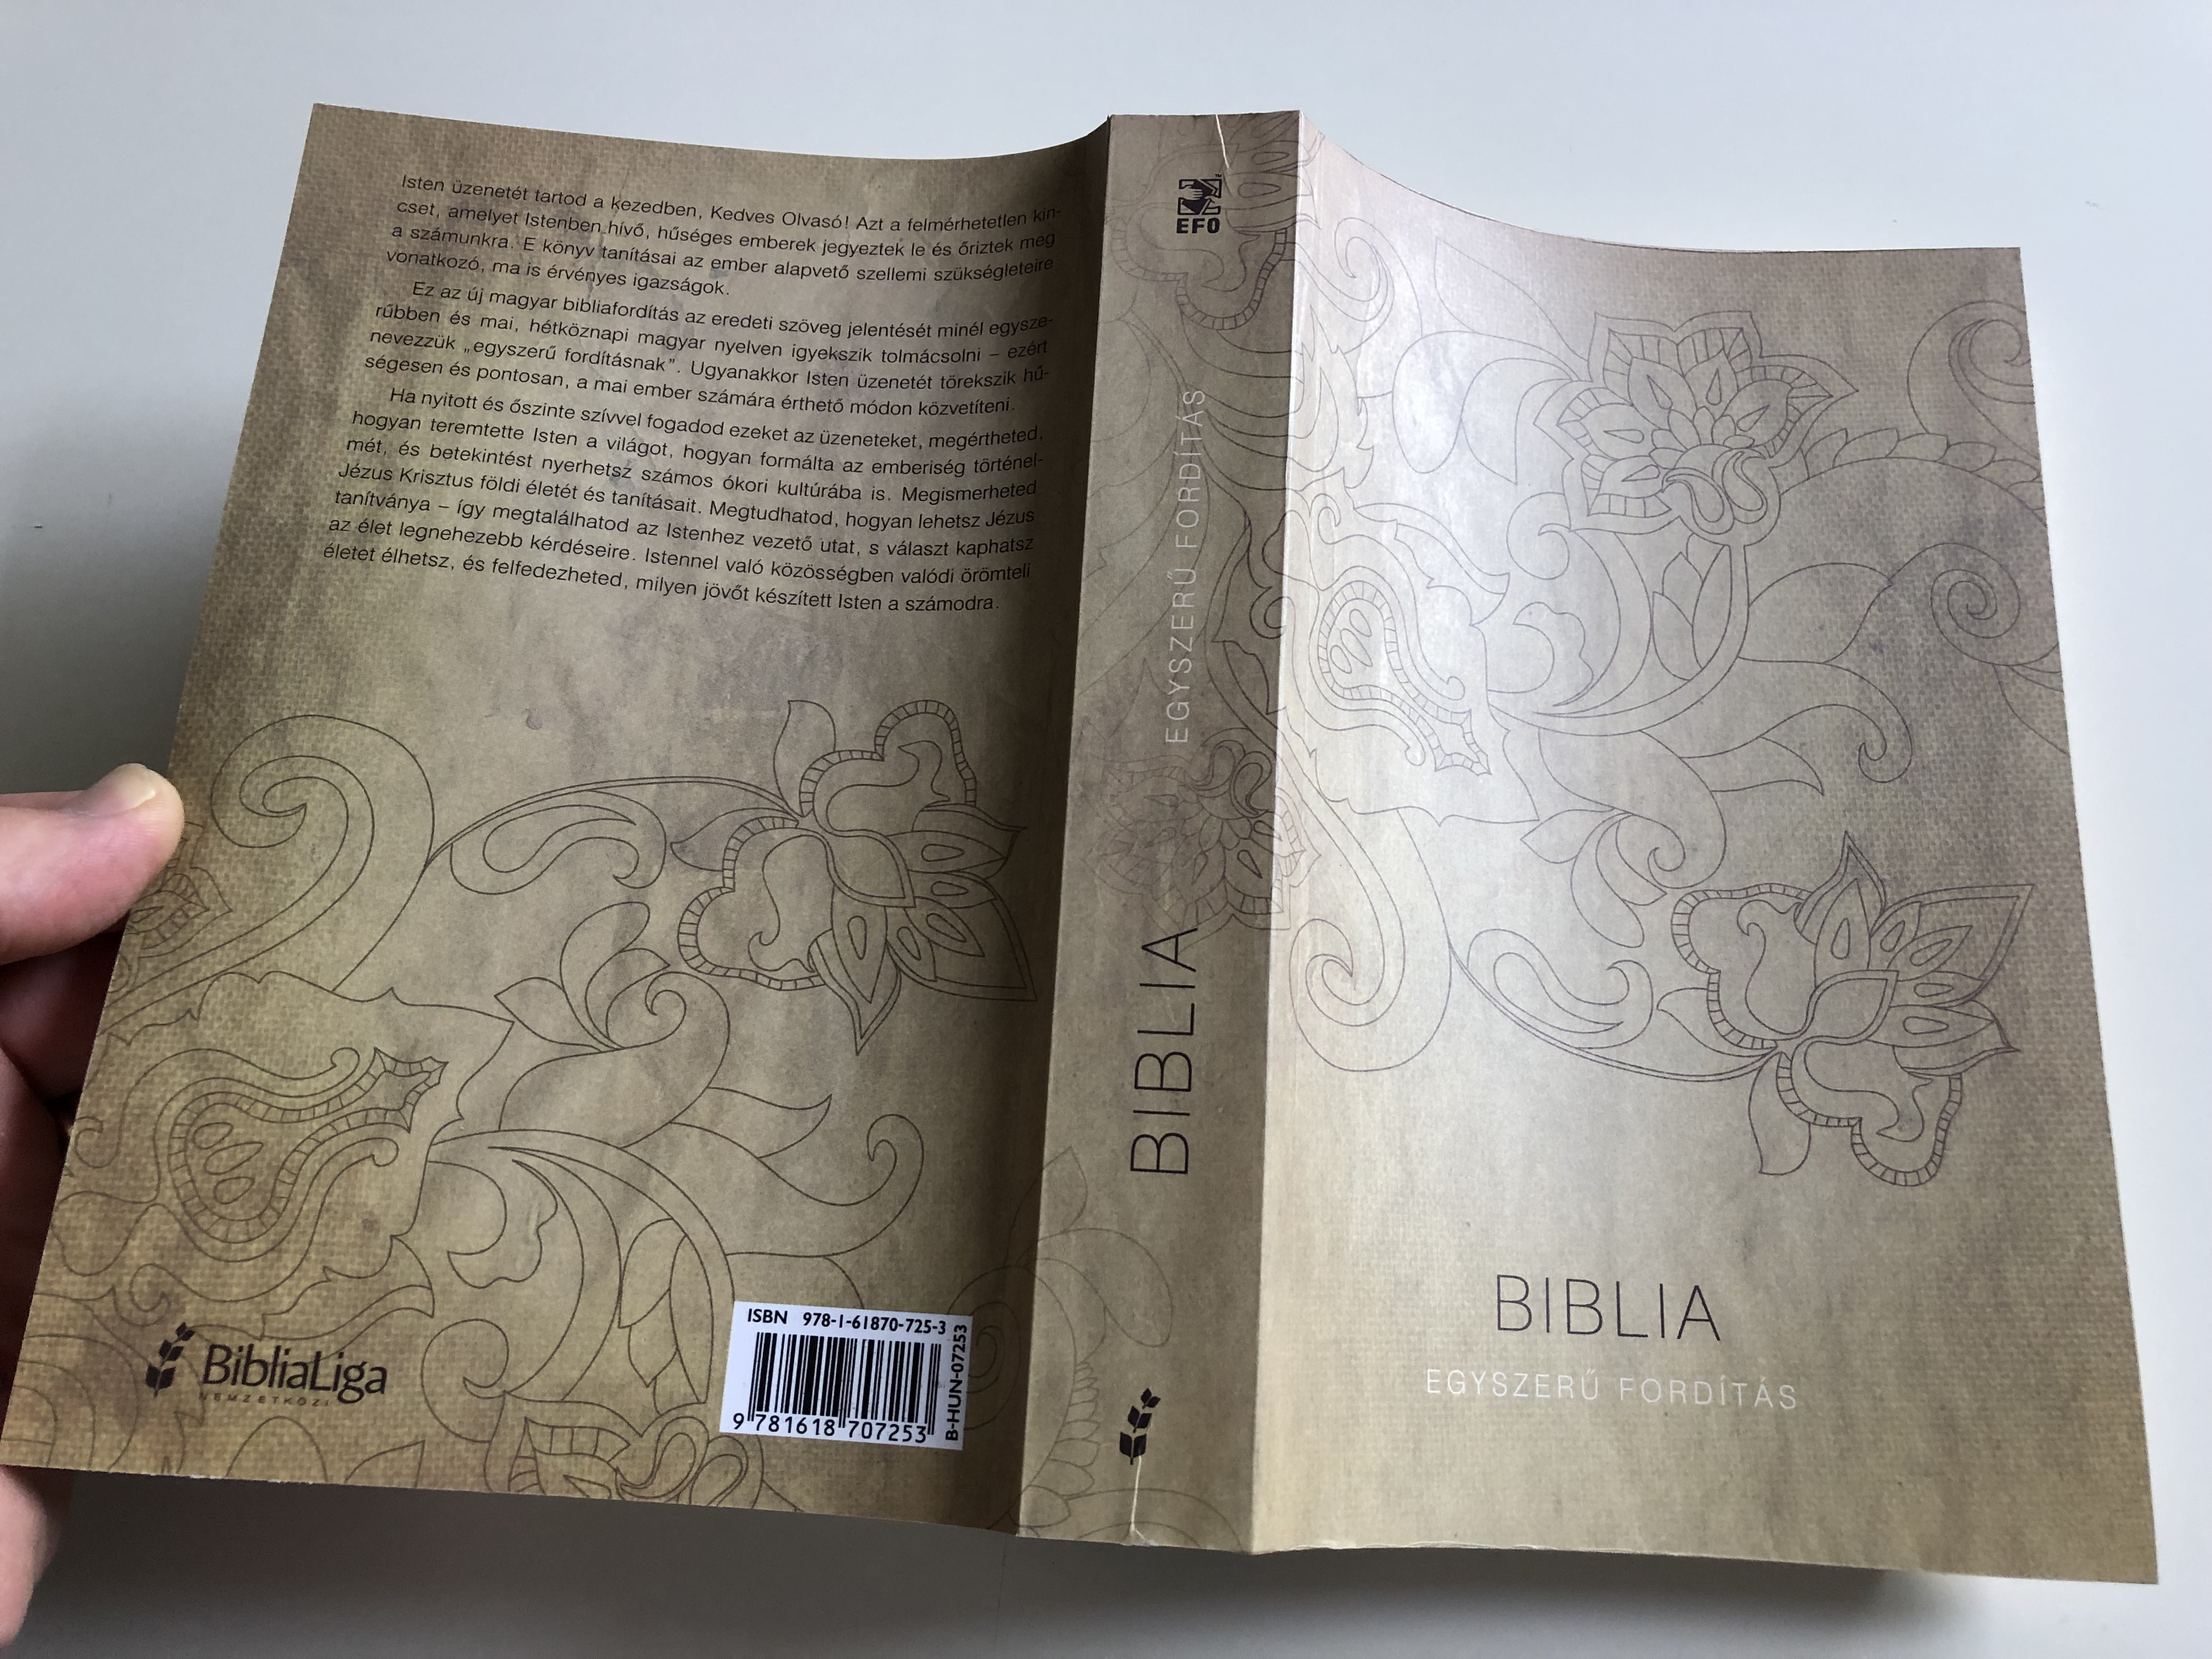 hungarian-bible-easy-to-read-version-antic-cover-magyar-szent-biblia-egyszer-fordit-s-efo-biblia-paperback-2012-bible-league-international-3-.jpg